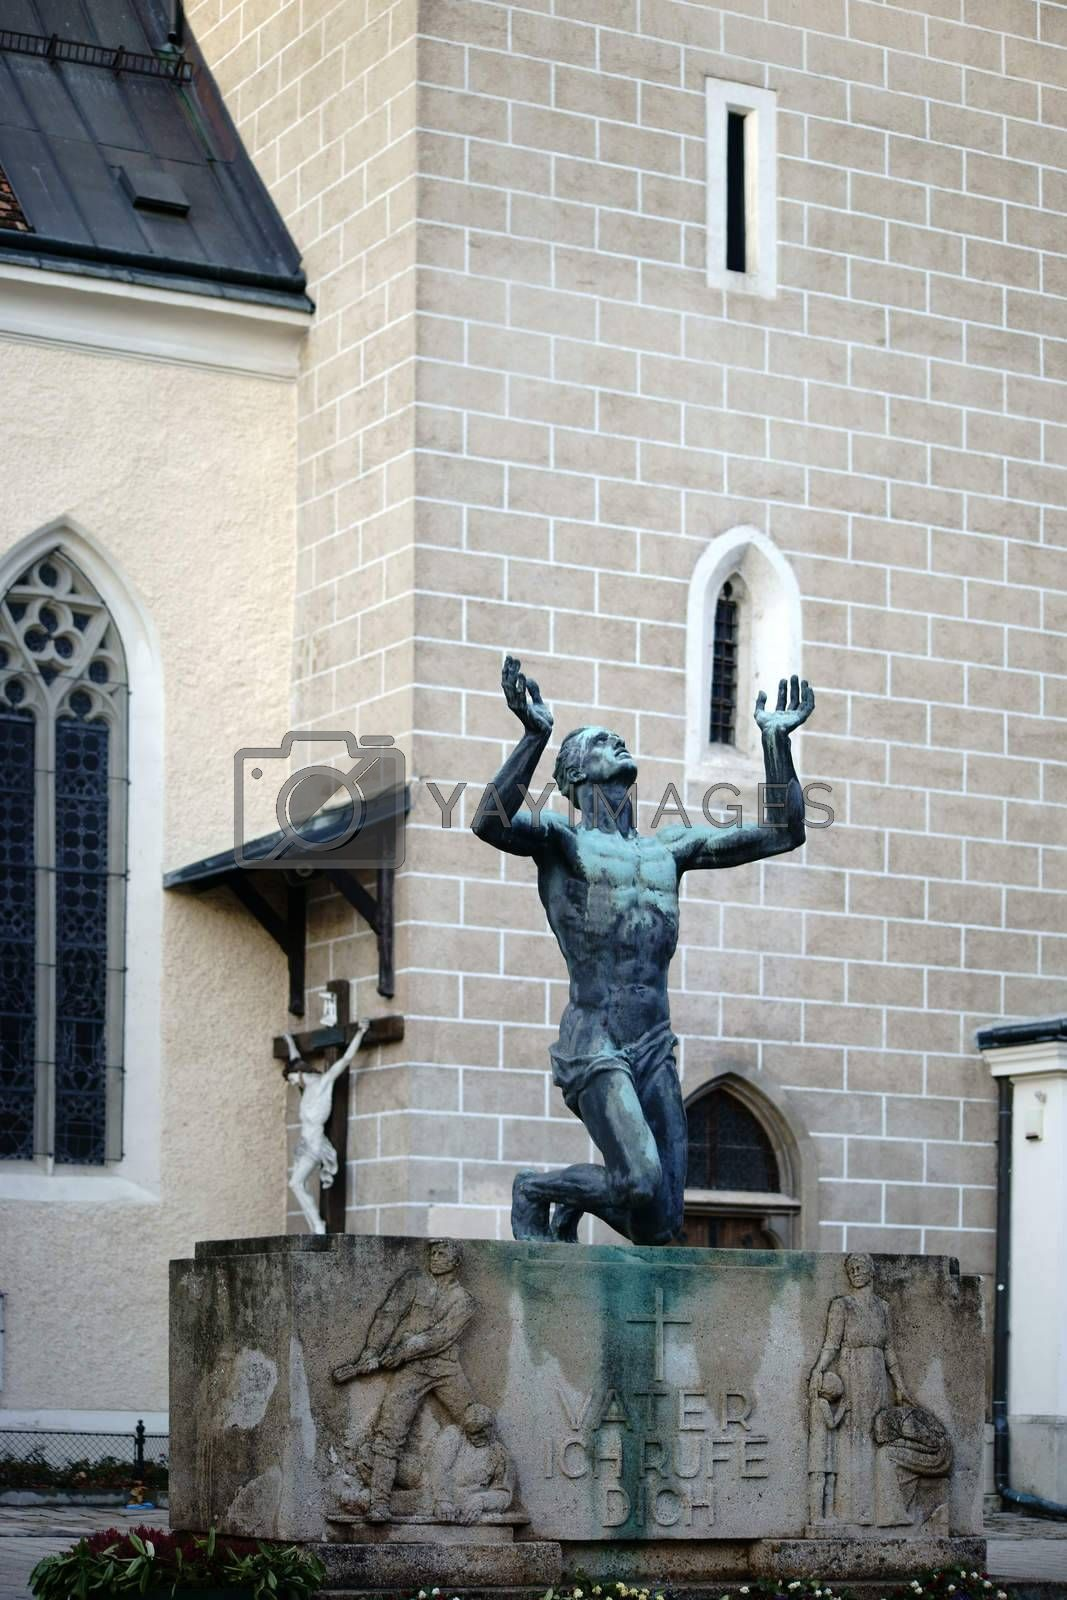 """Baden near Vienna, Austria - November 14, 2015: The sculpture """"Father, I'll call you!"""" In honor of the fallen soldiers in World War II by the artist Josef Mueller on November 14, 2015 in Baden near Vienna."""